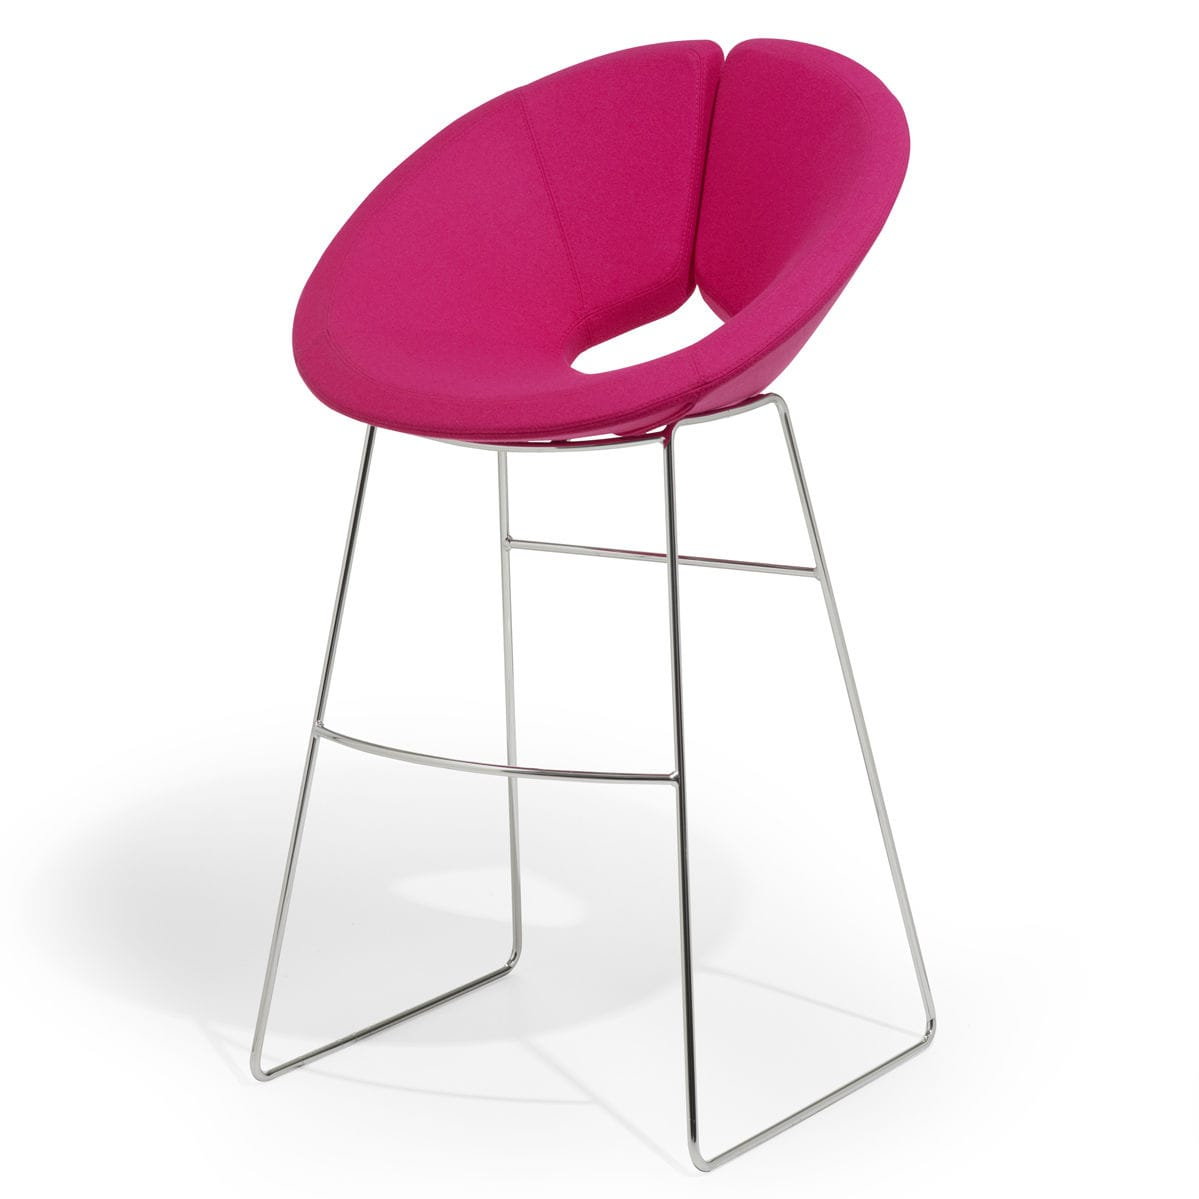 contemporary bar chair / with footrest / upholstered / sled base - LITTLE APOLLO  sc 1 st  ArchiExpo & Contemporary bar chair / with footrest / upholstered / sled base ...